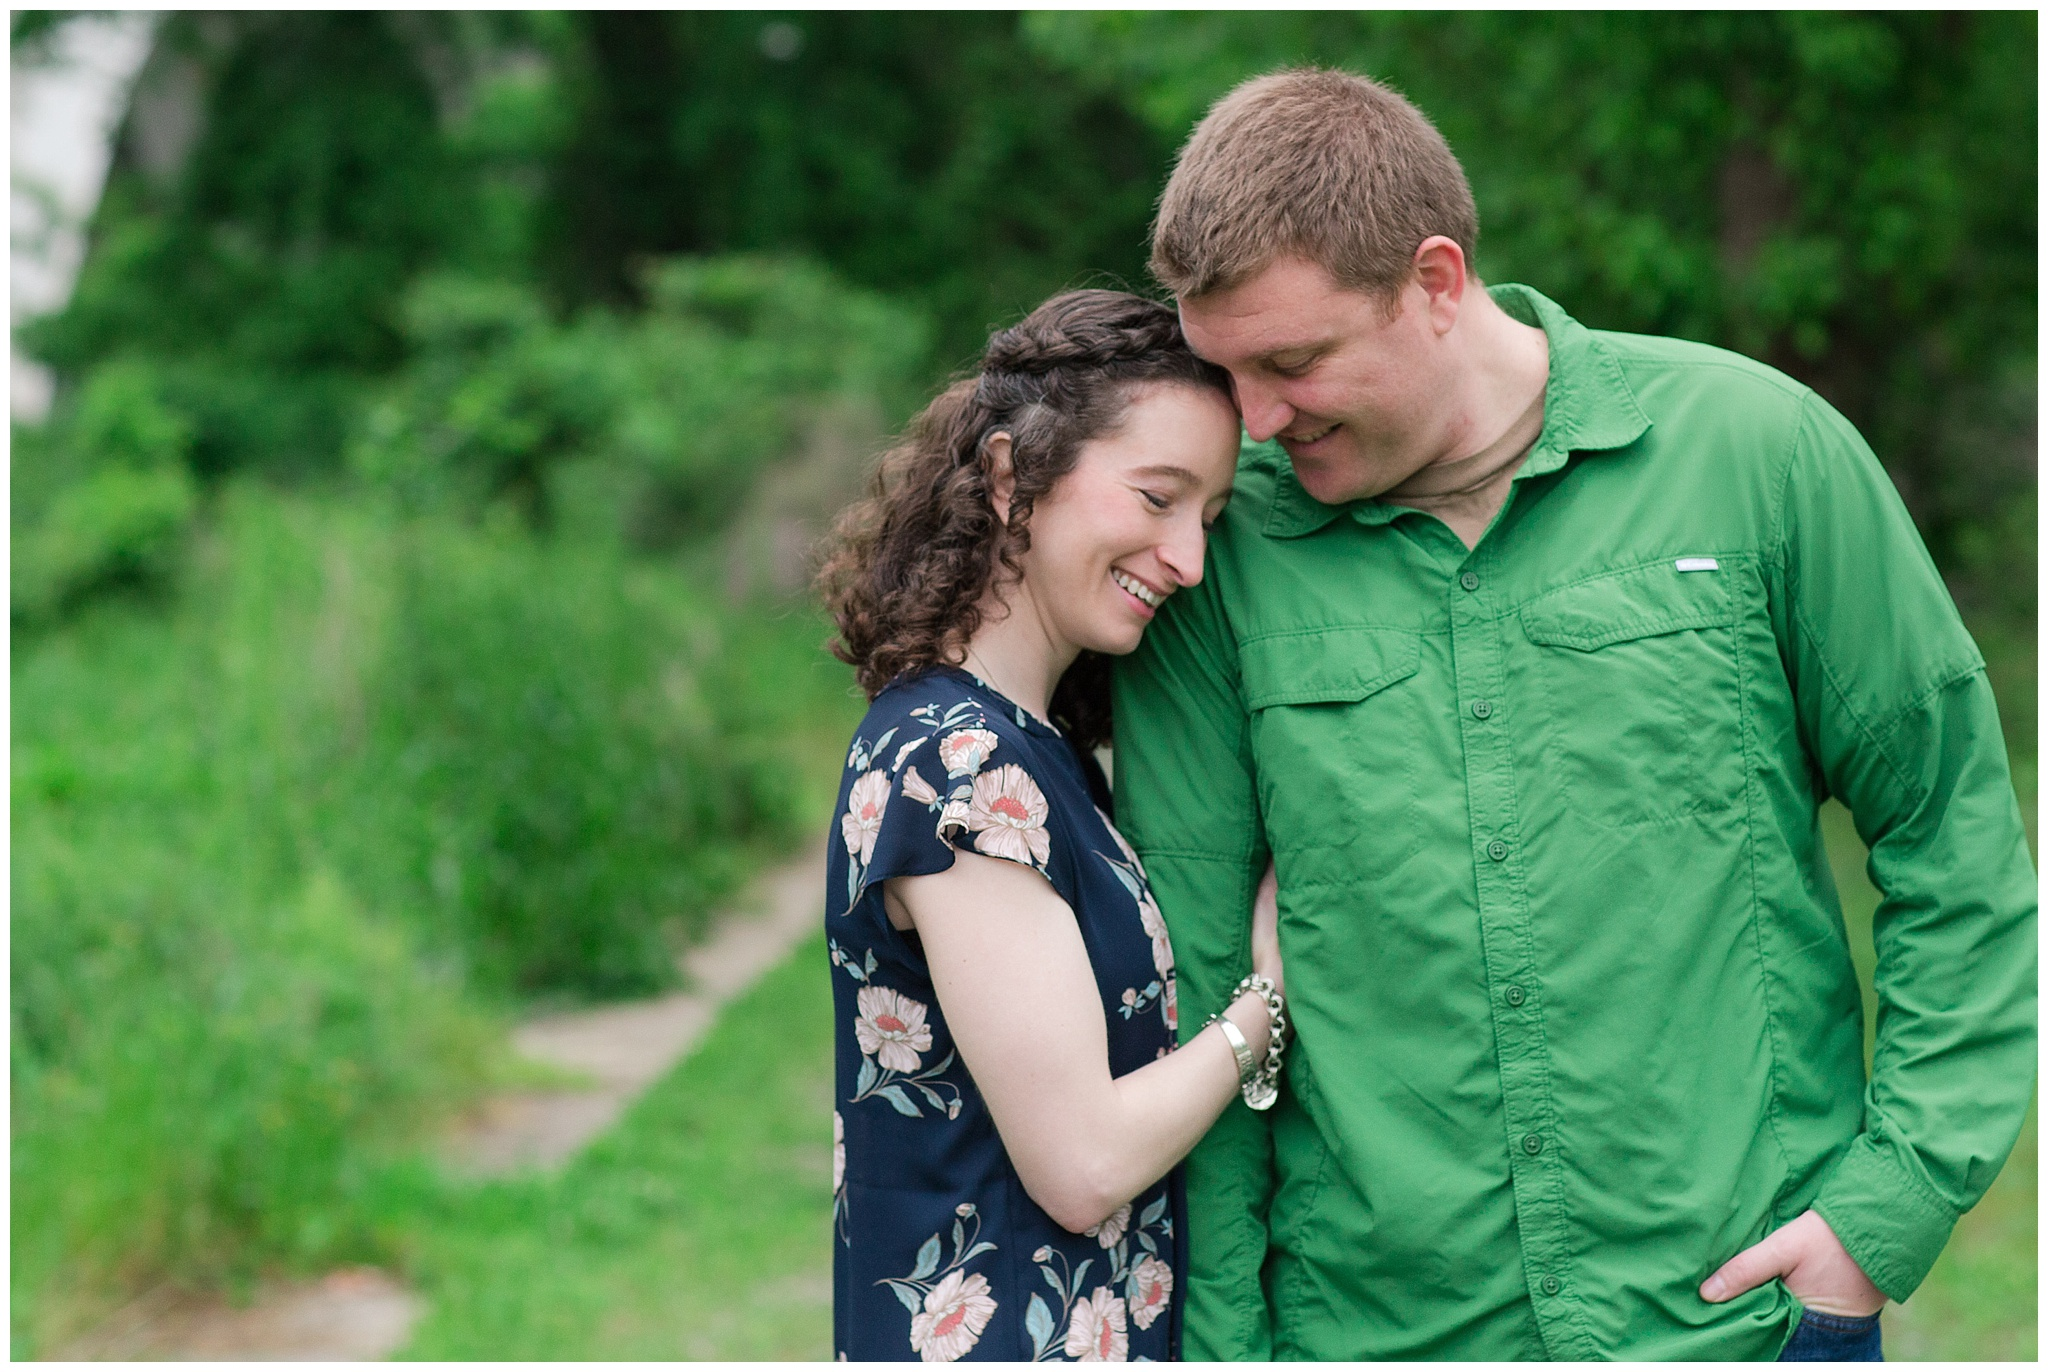 engagement_session_detweiler_0002.jpg